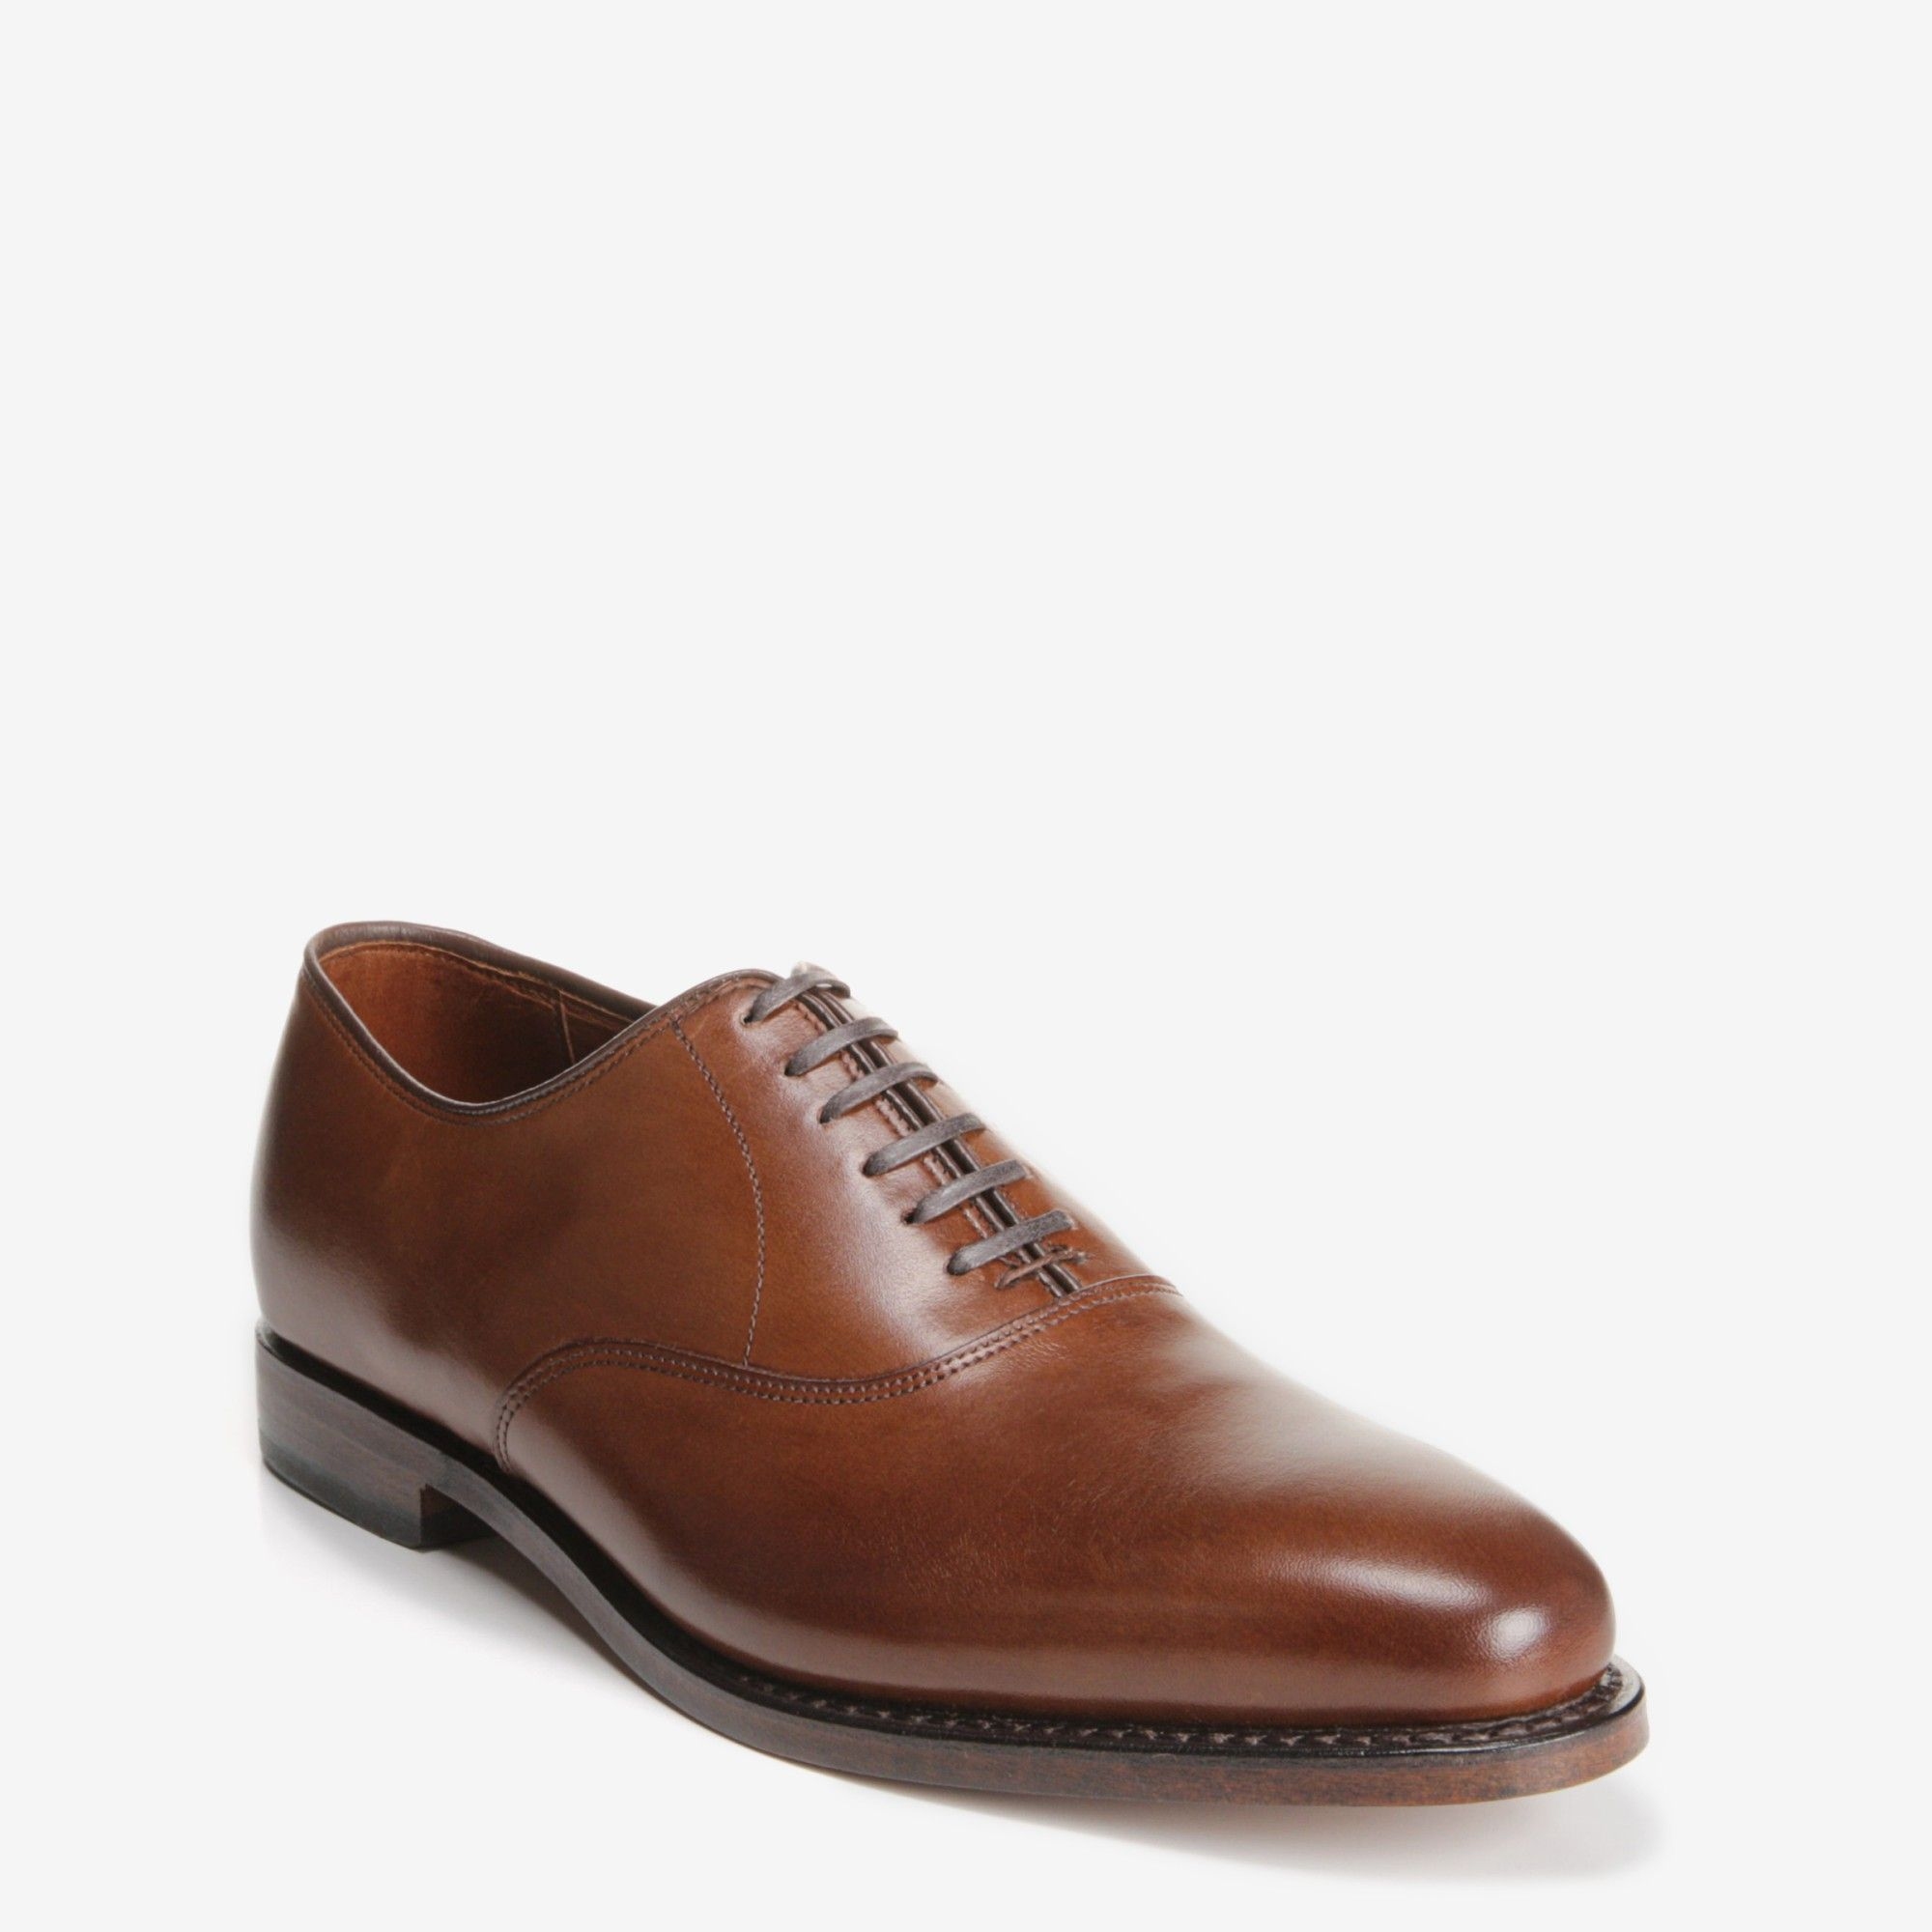 70fd1f583b8 Carlyle - Plain-toe Lace-up Oxford Men s Dress Shoes by Allen Edmonds.  Leather Sole. Eligible for Recrafting. Handcrafted in the USA of fine  imported ...